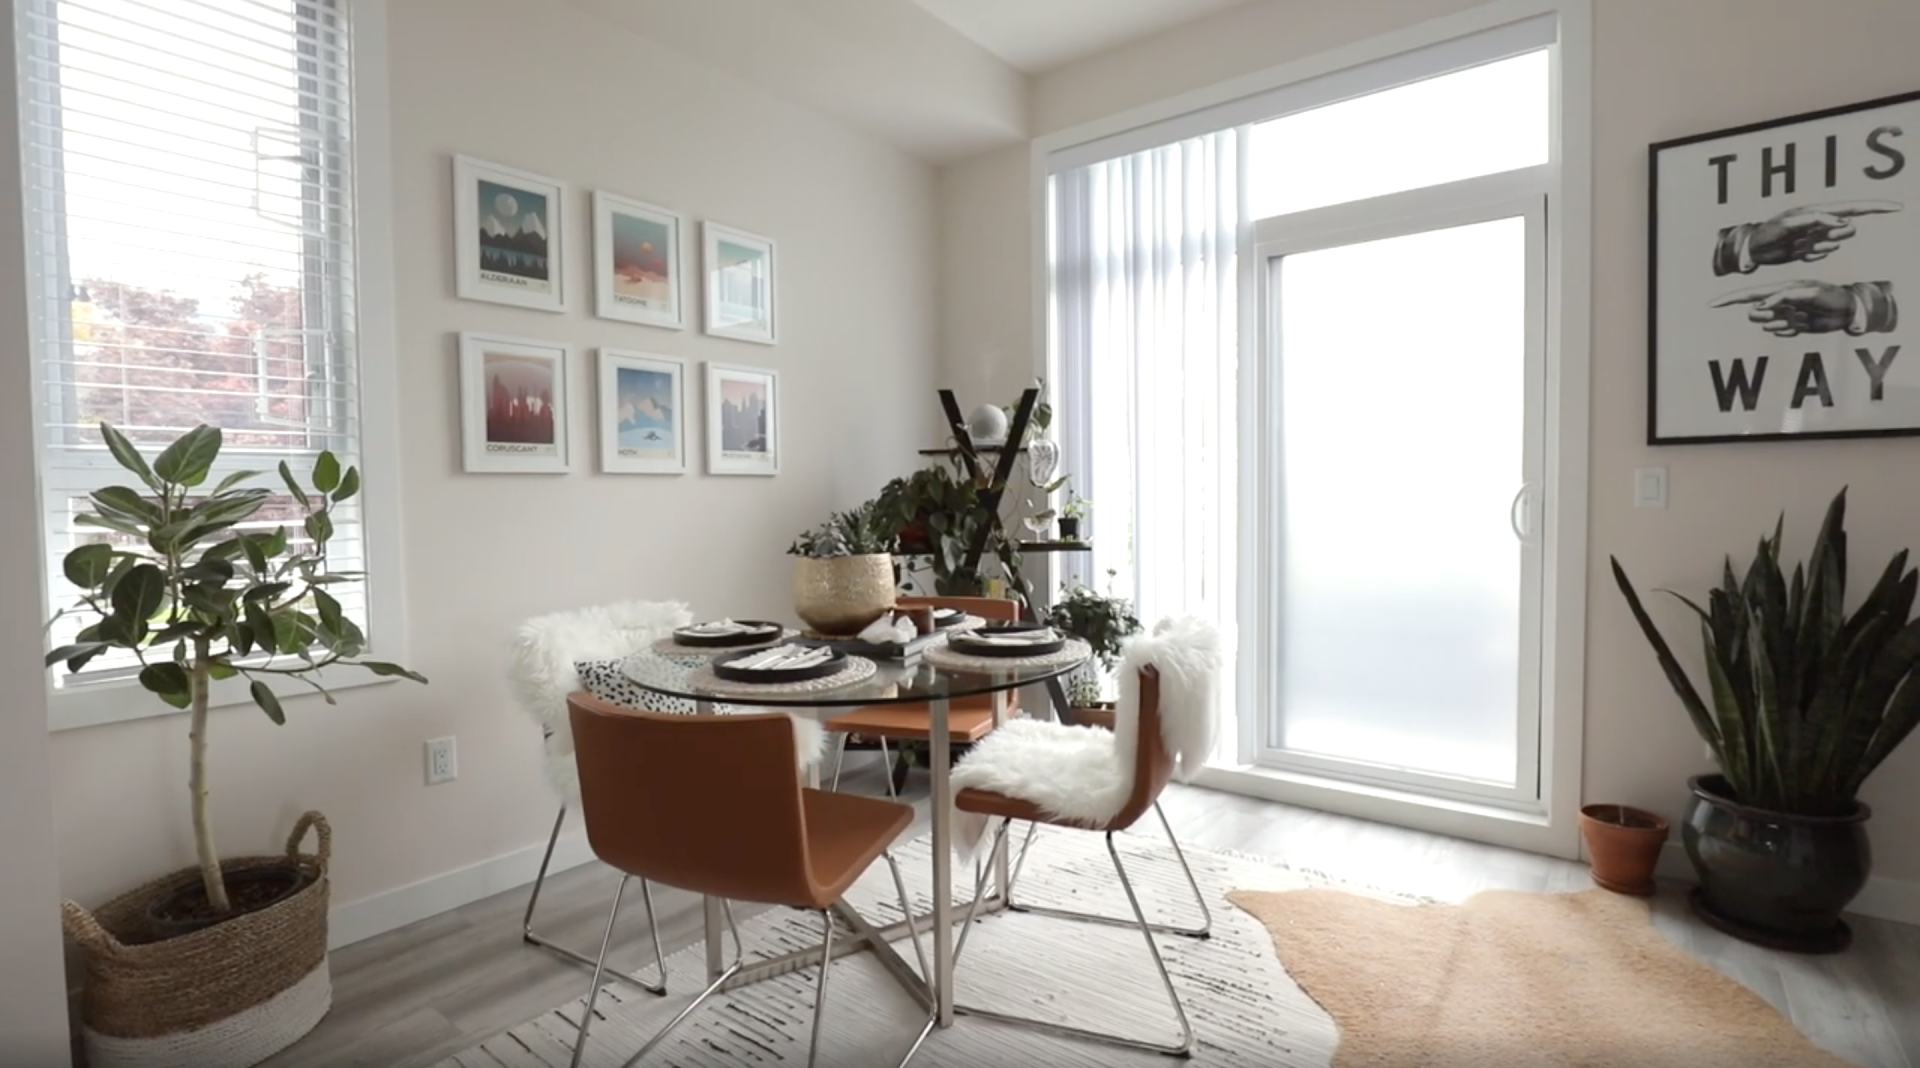 Karissa Pukas's Home Tour, Wideframe Shot of the Dining room. Large, Round Glass table with faux leather Ikea chair, plants on the floor and shelves, and artwork on the wall